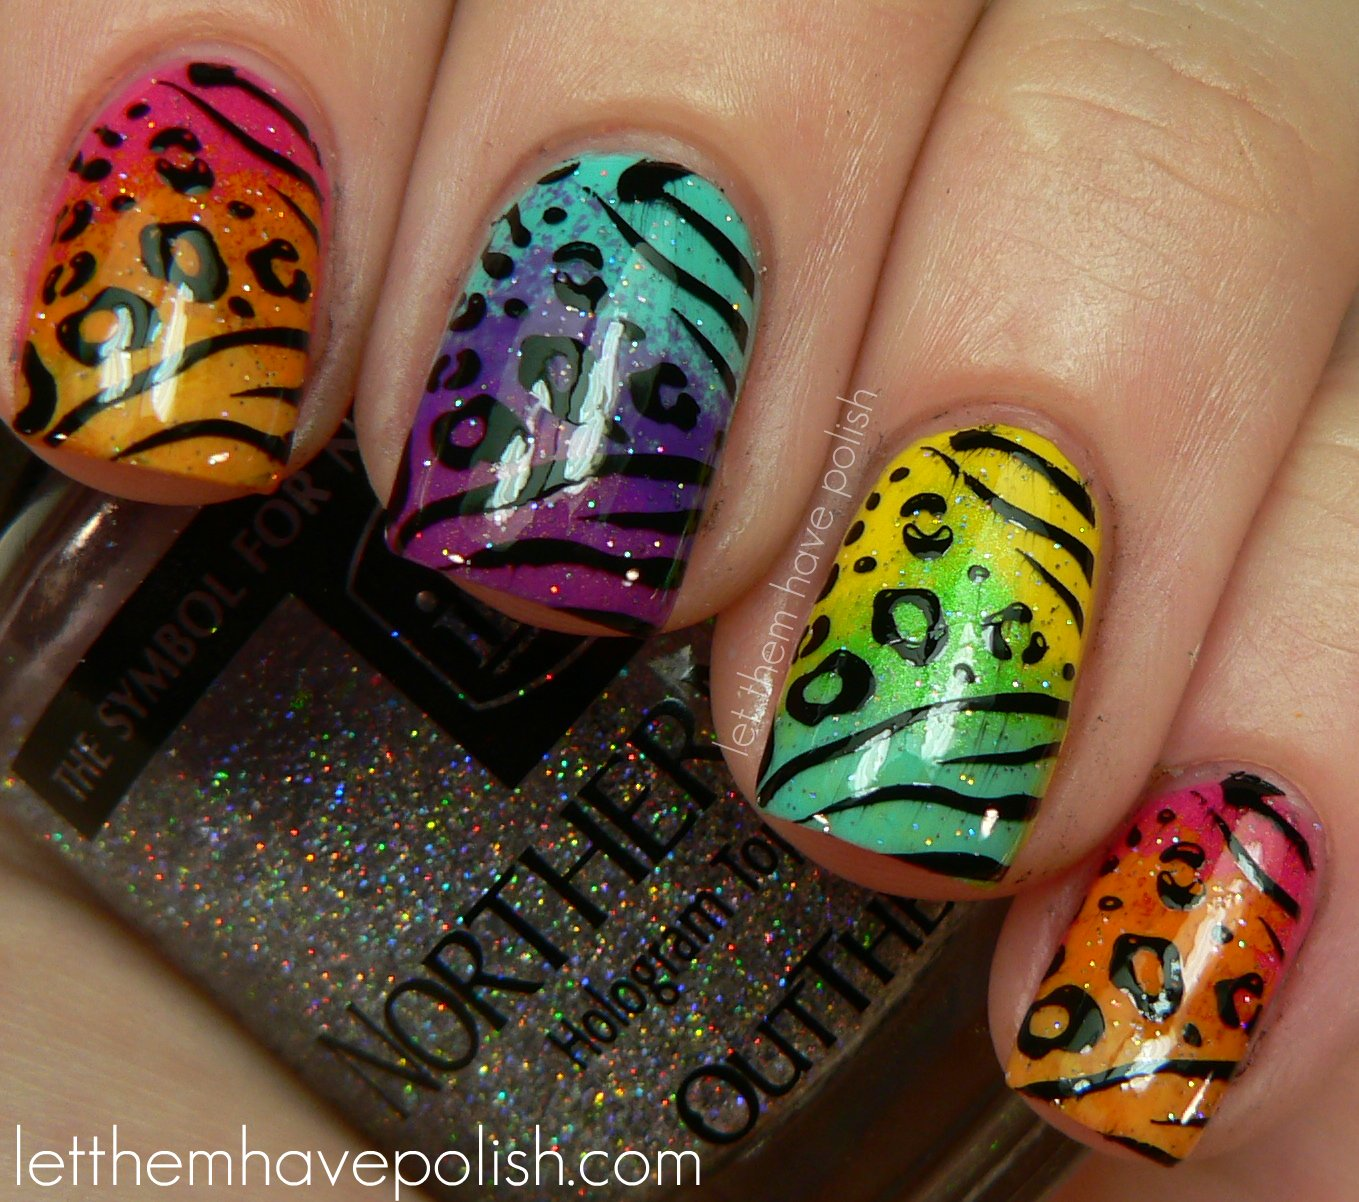 Animal Nail Designs: Let Them Have Polish!: 31 Day Challenge! Day 13- Animal